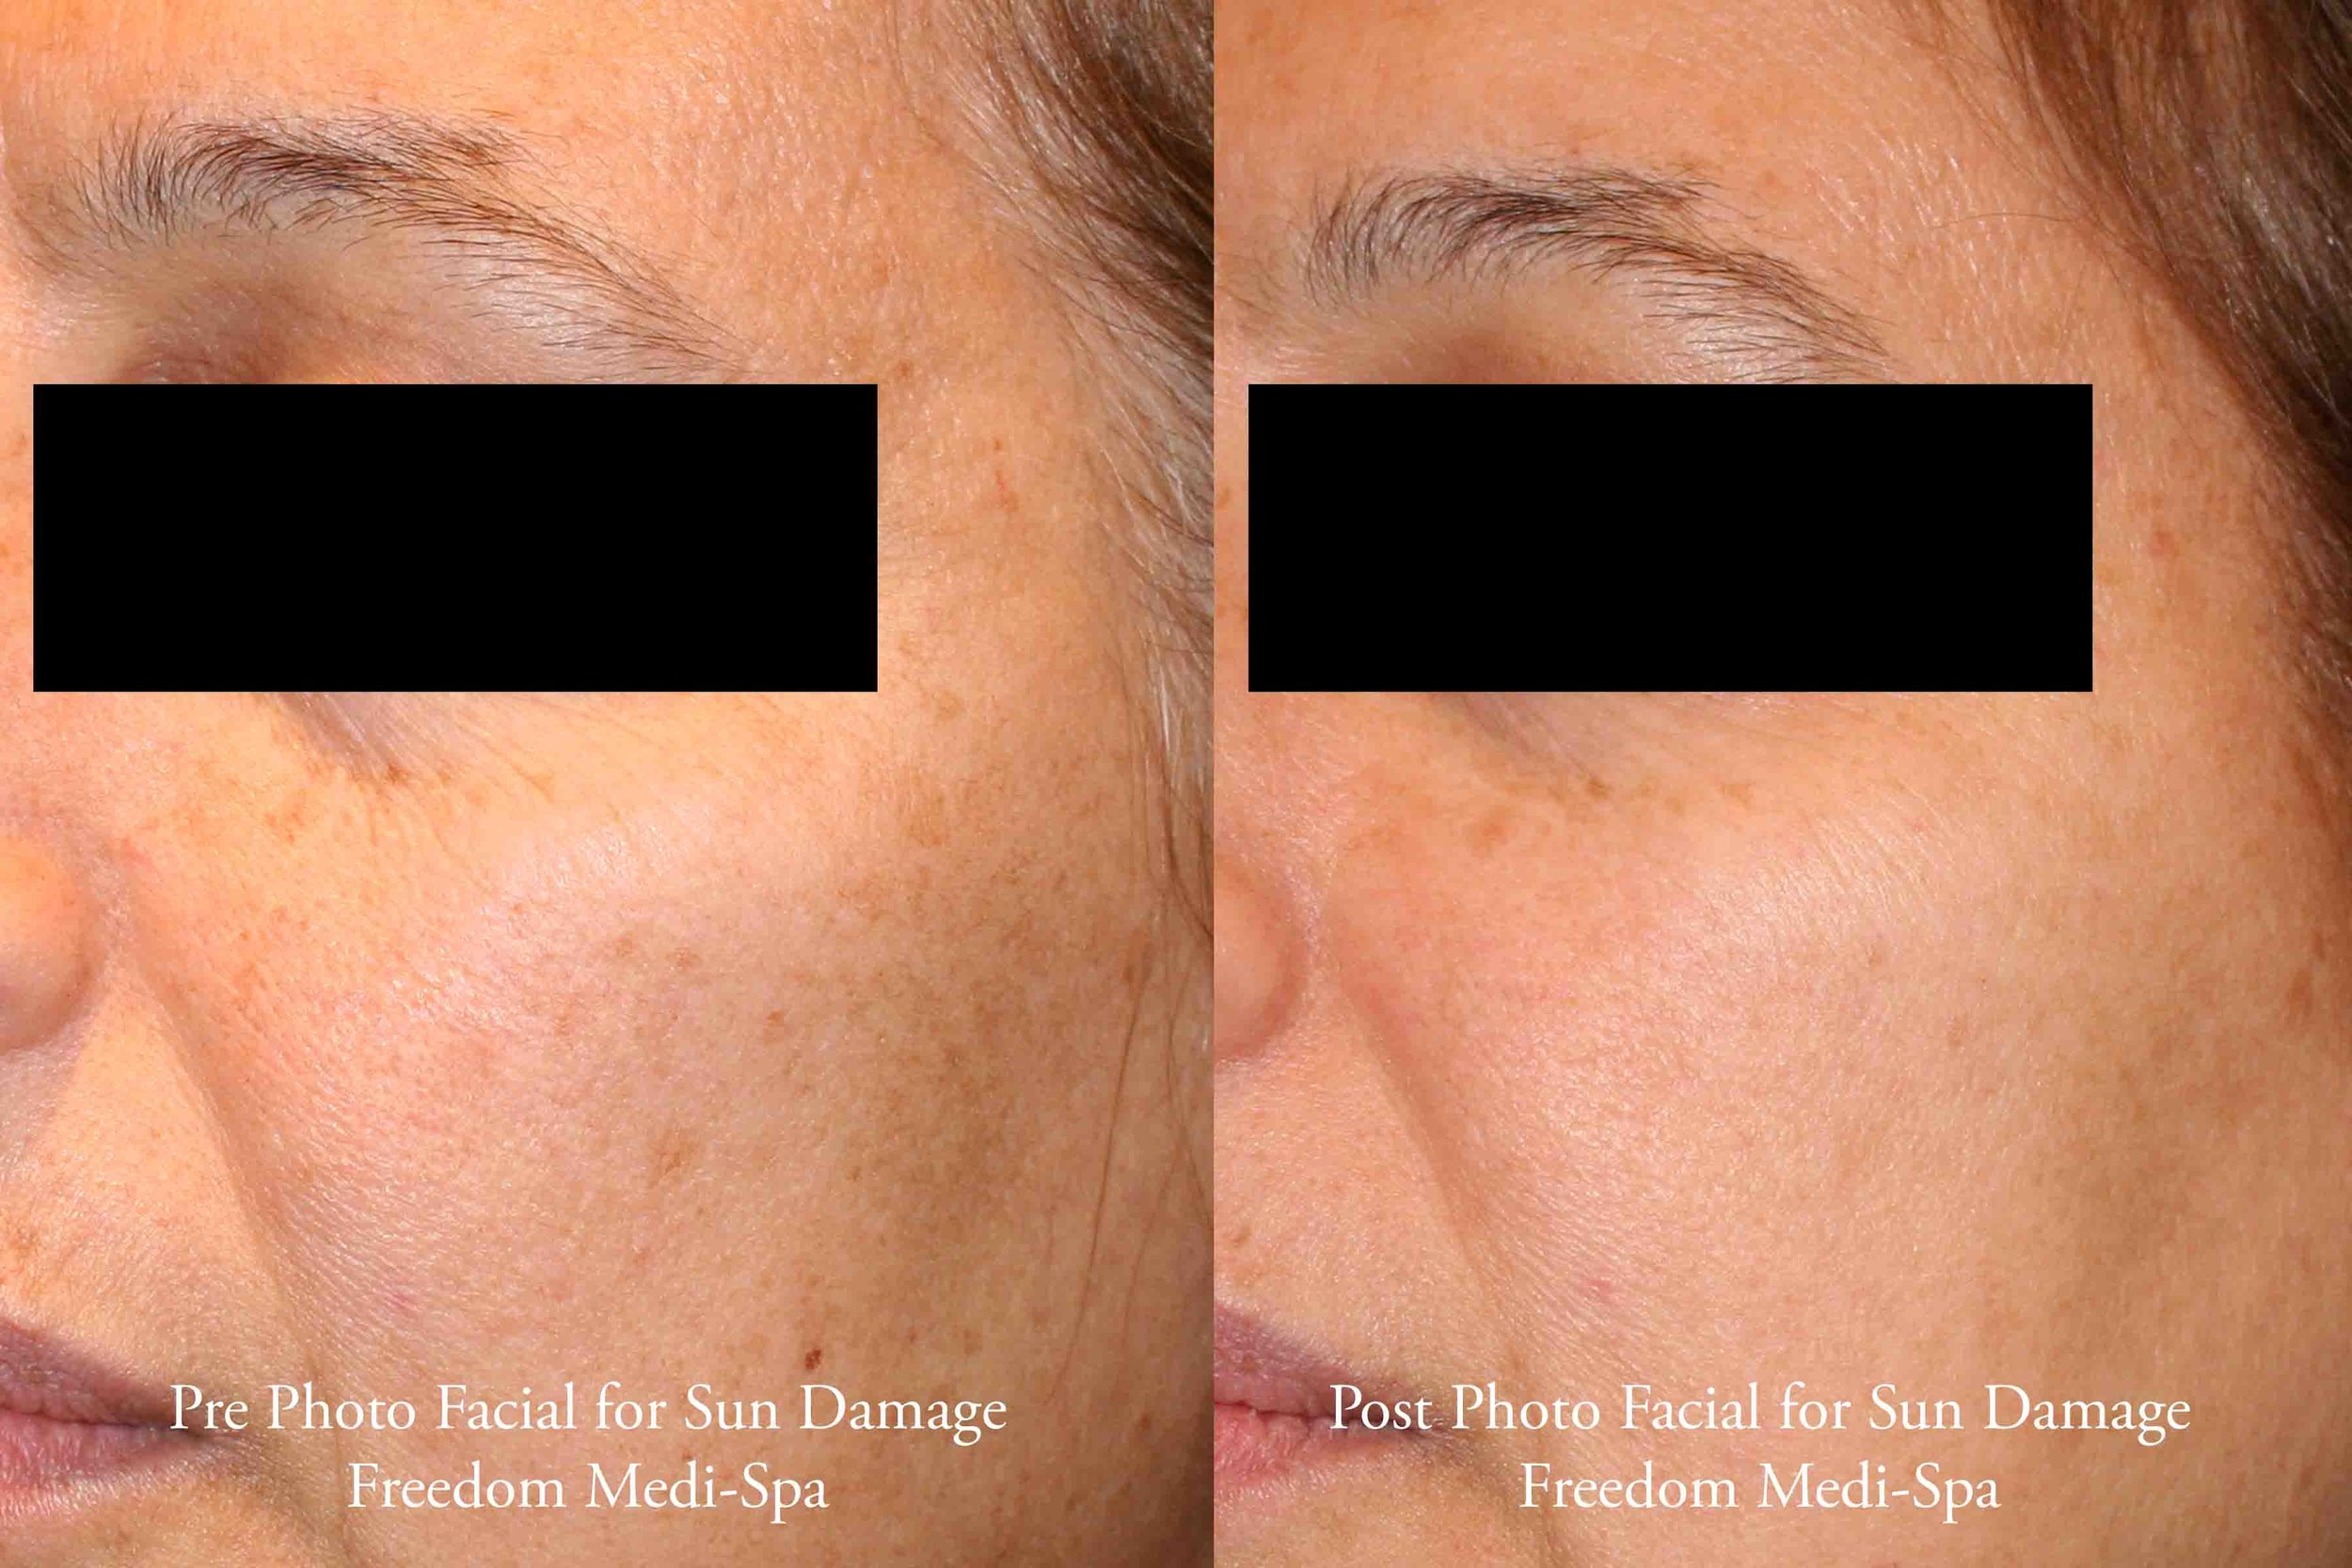 Photo Facial for Sun Damage April 2017.jpg